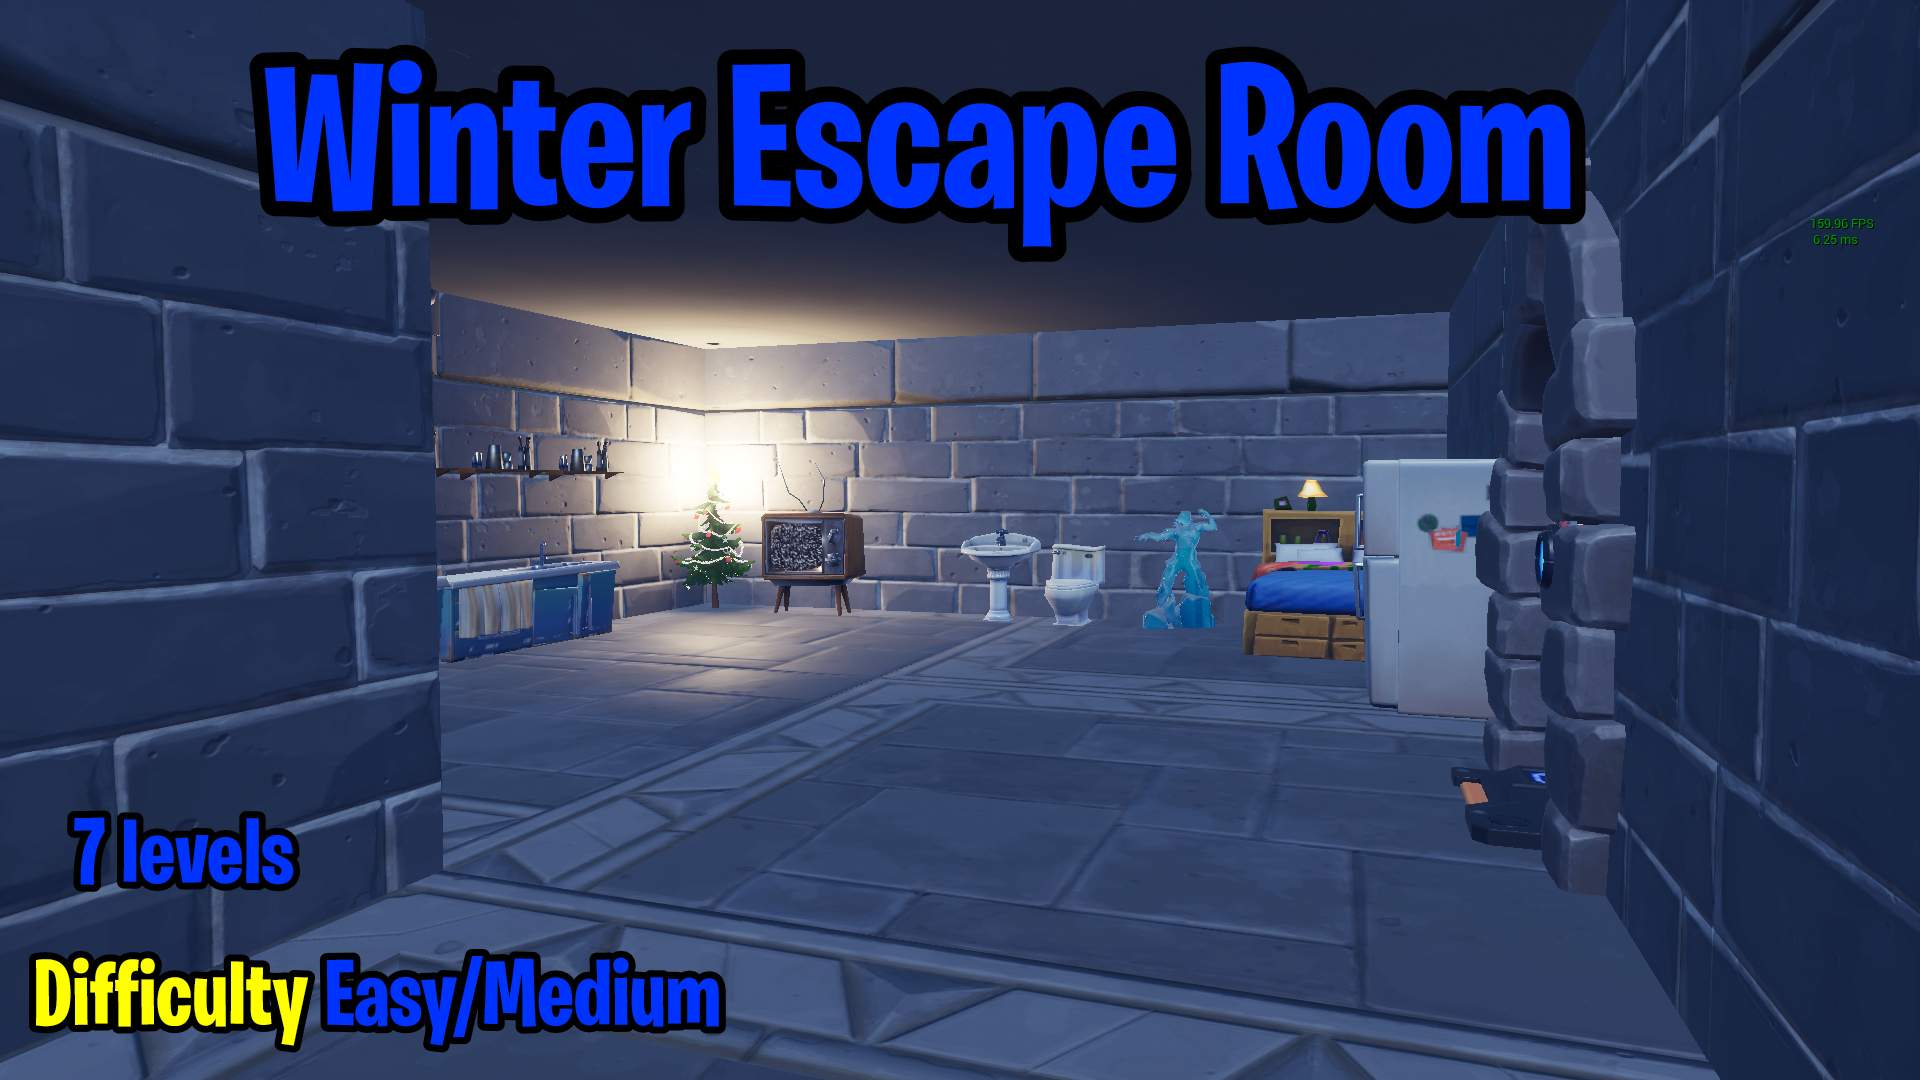 WINTER ESCAPE ROOM